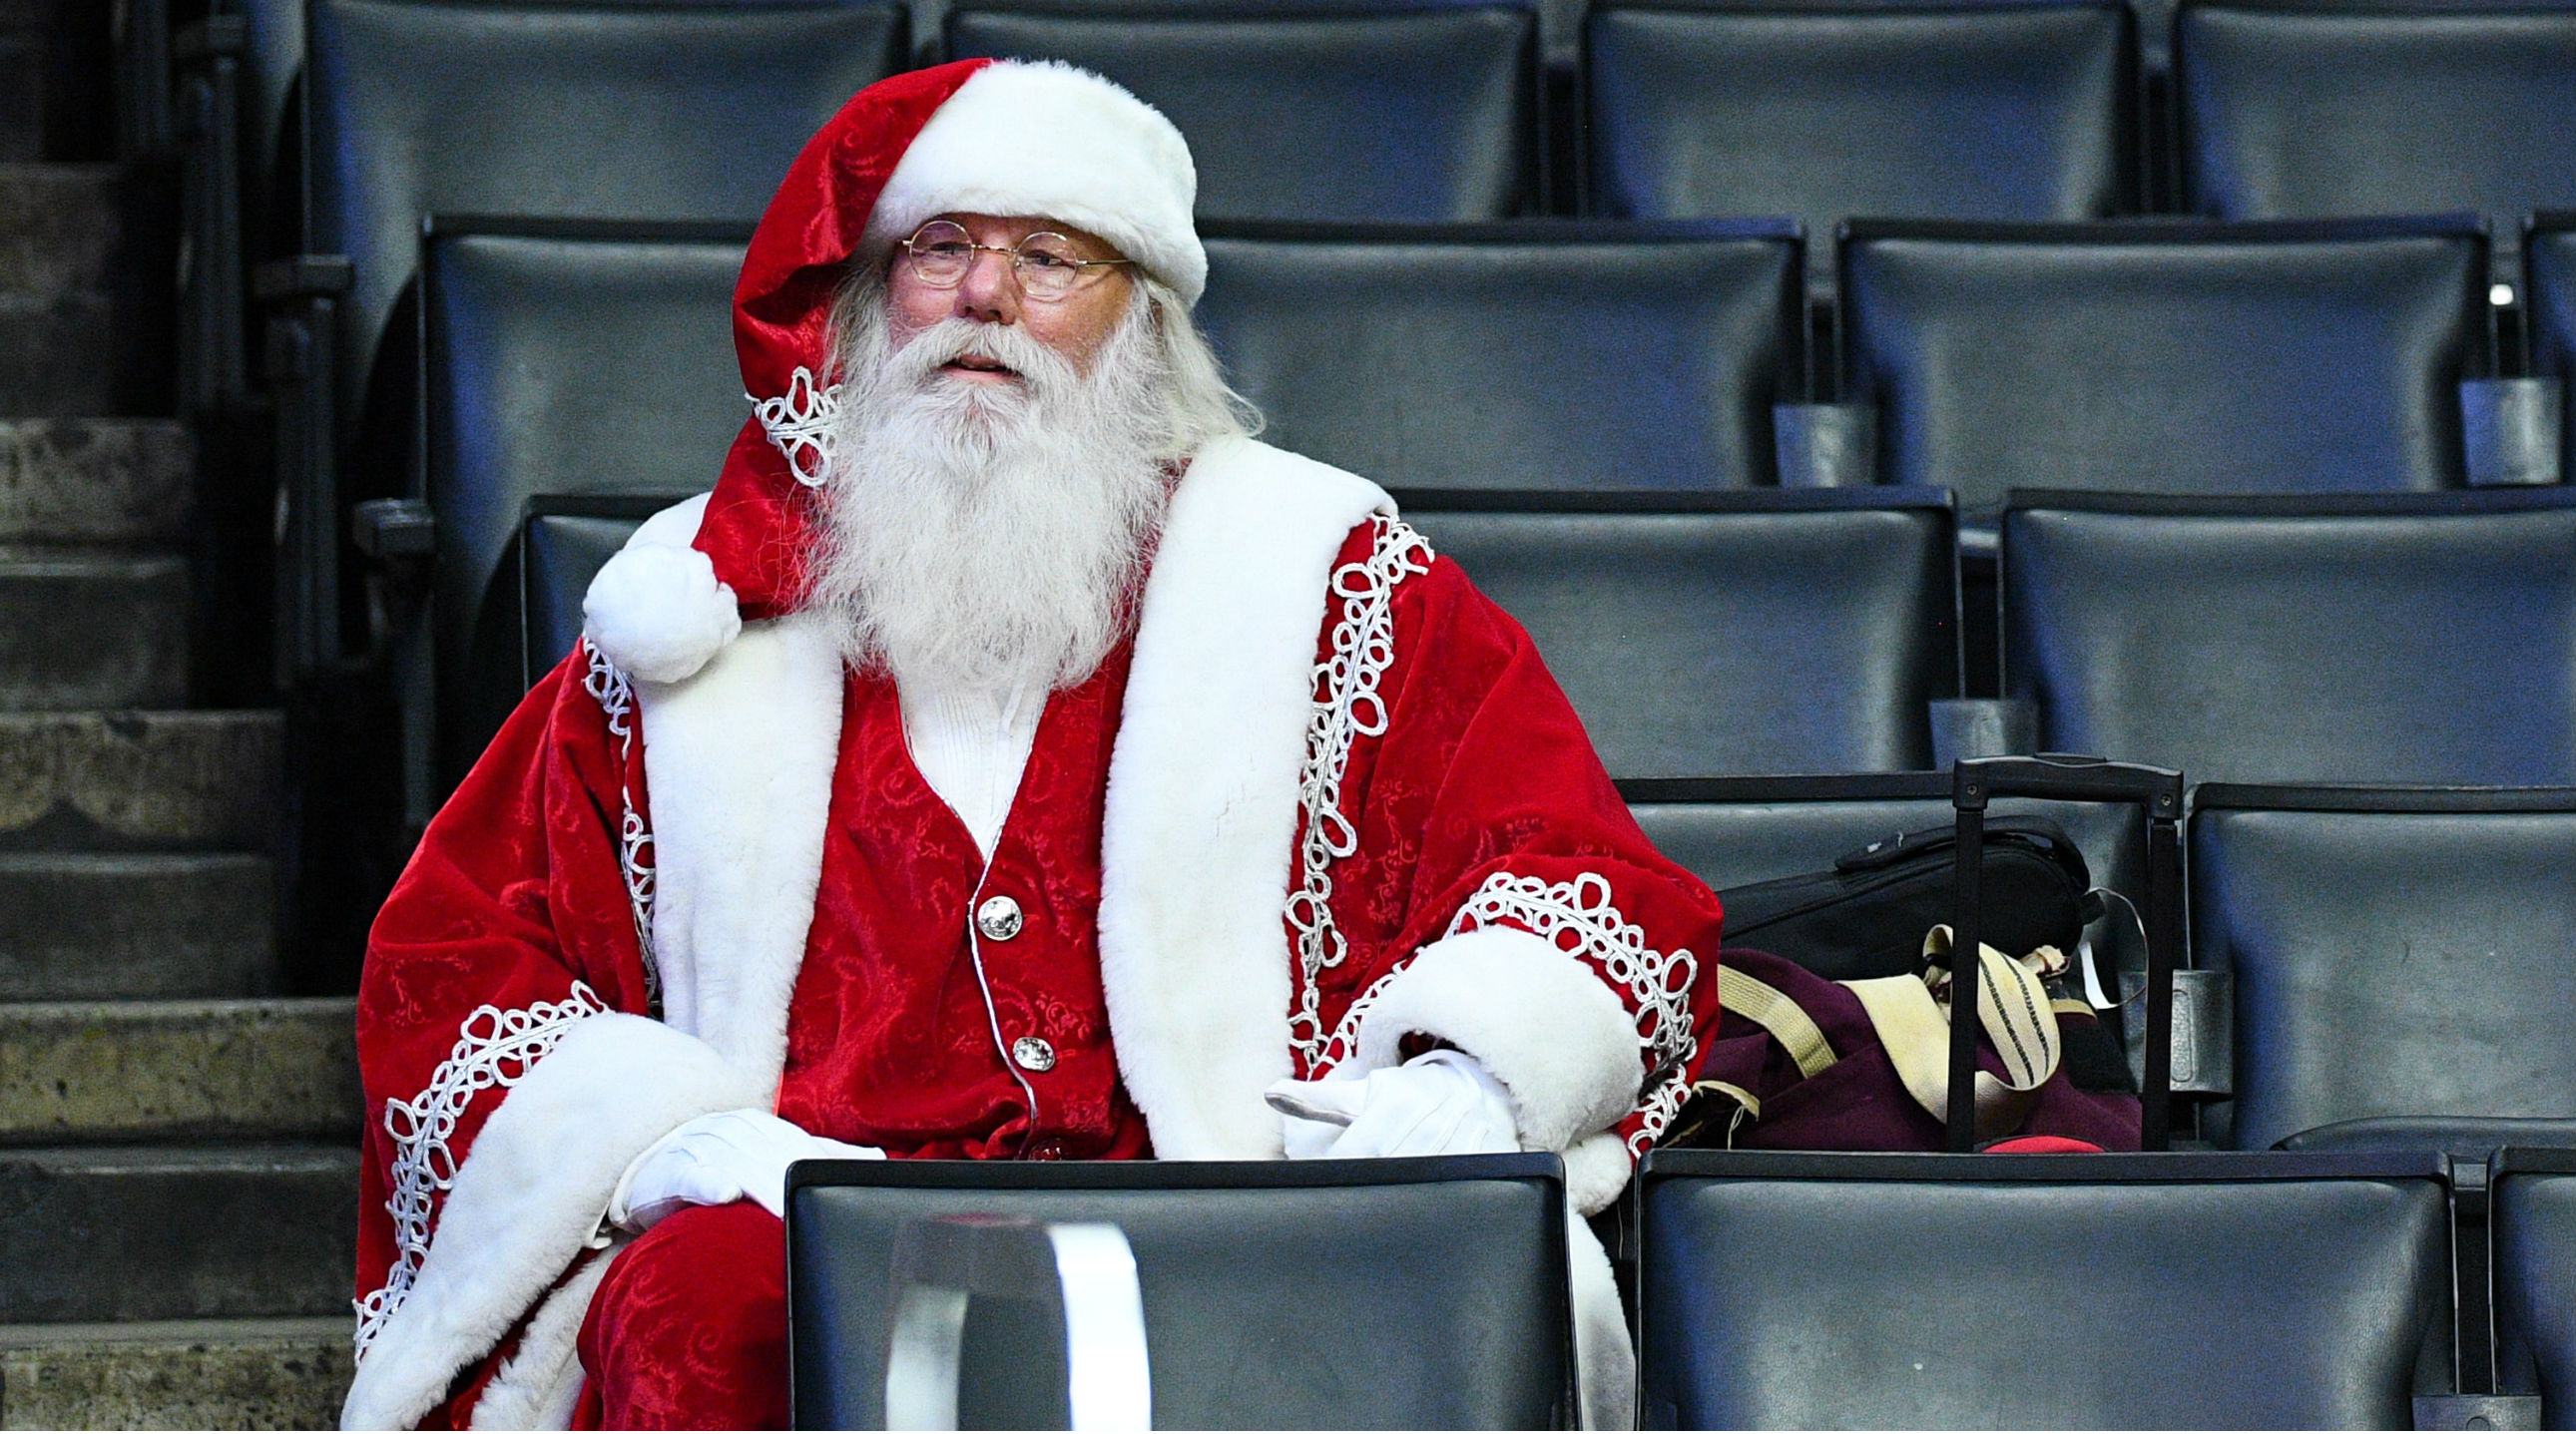 Nba Christmas 2019 NBA Christmas: 2019 games feature Lakers, Clippers, Bucks, Sixers